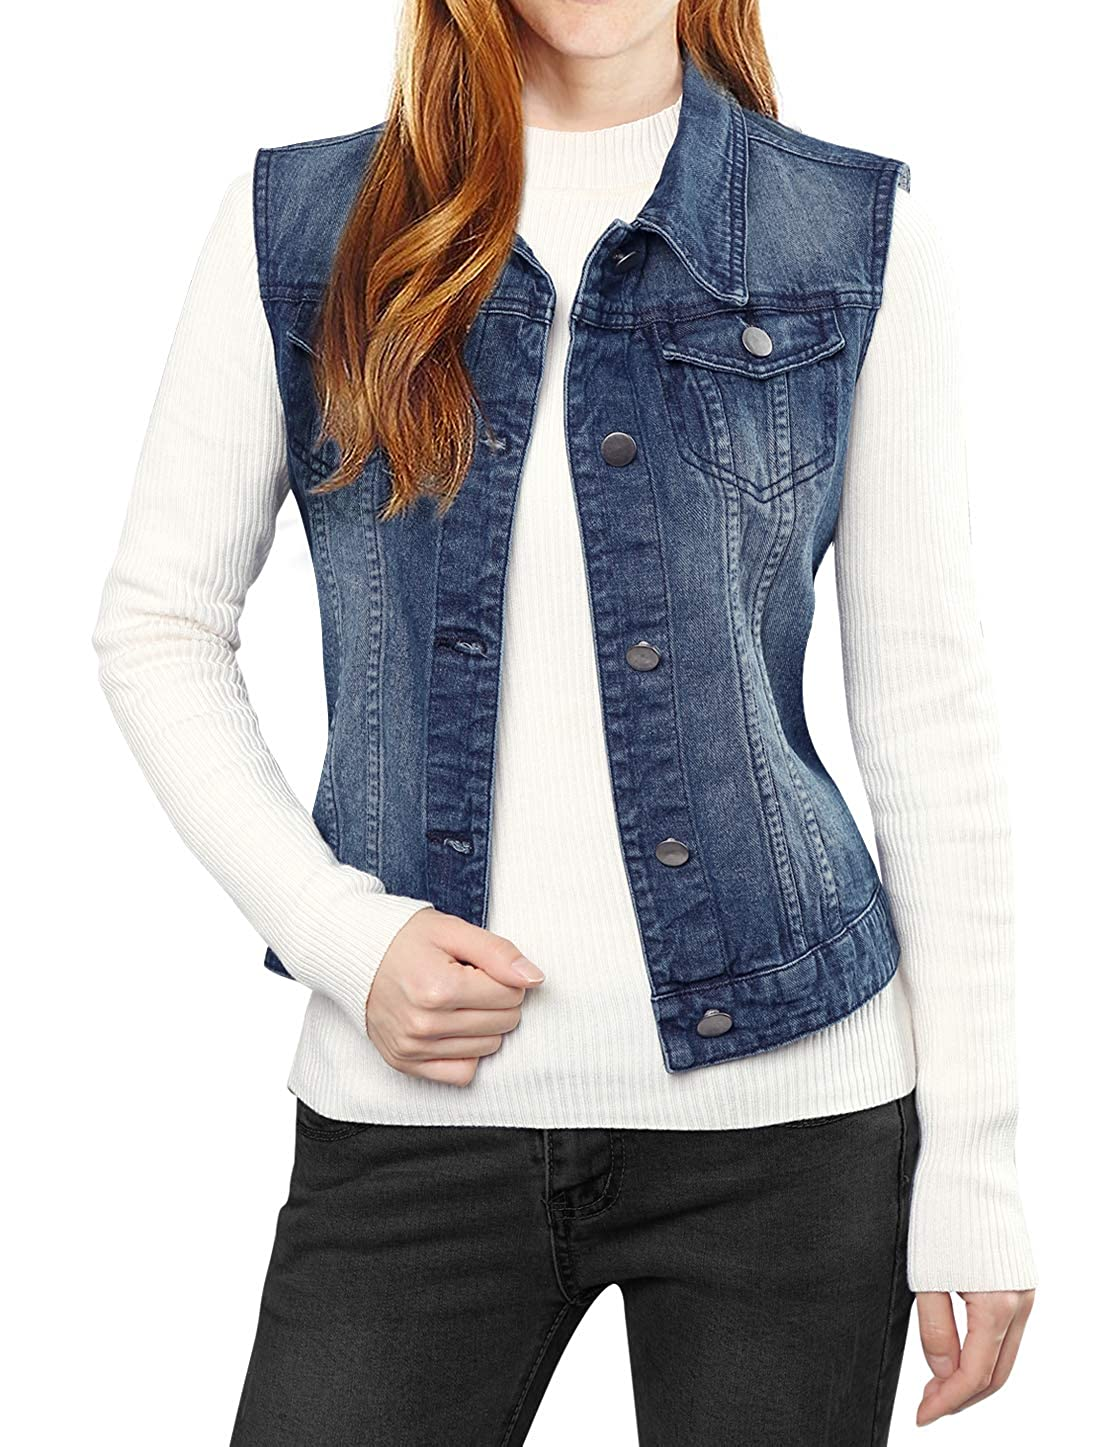 Allegra K Women's Washed Denim Vest Dark Blue M a15120500ux0483